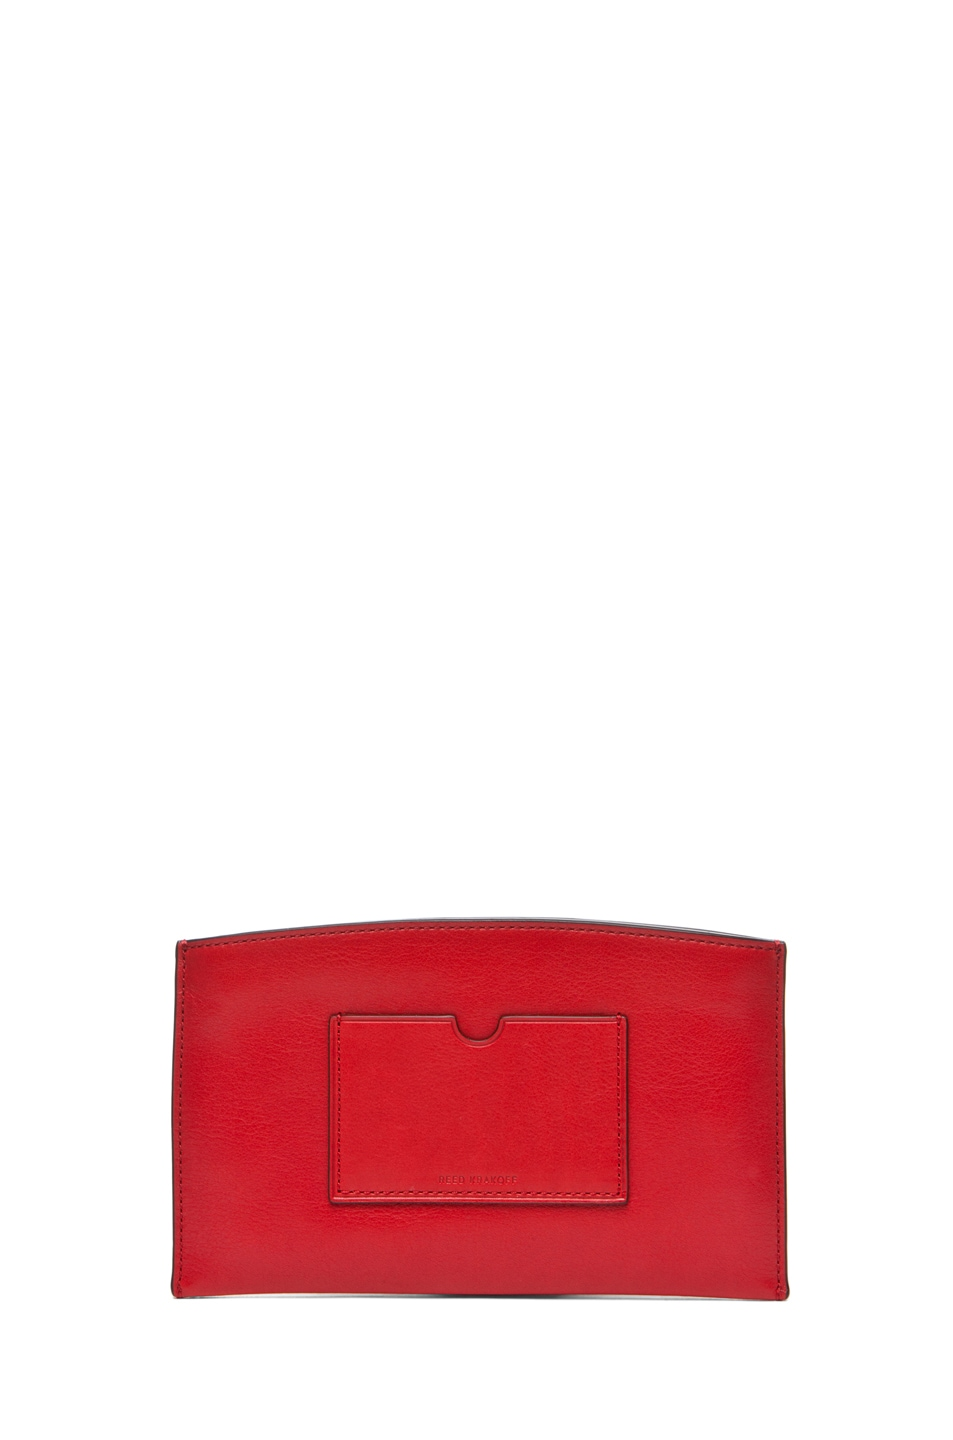 Image 6 of Reed Krakoff Mini Atlantique in Crimson Multicolor